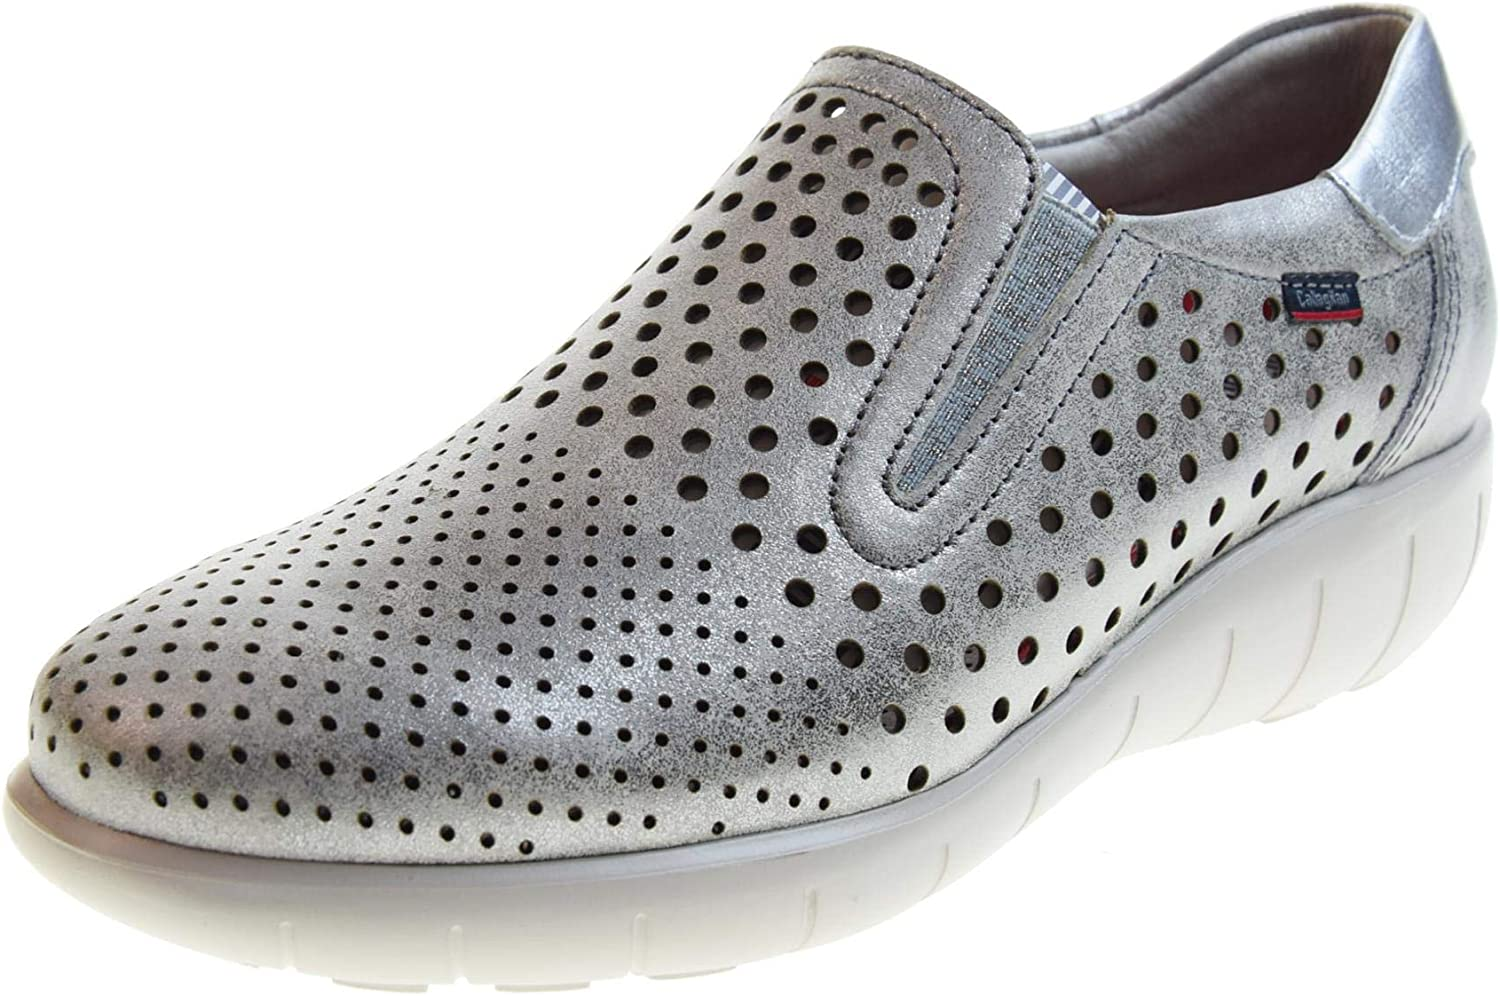 CALLAGHAN women's shoes sneakers without laces 11603 SILVER